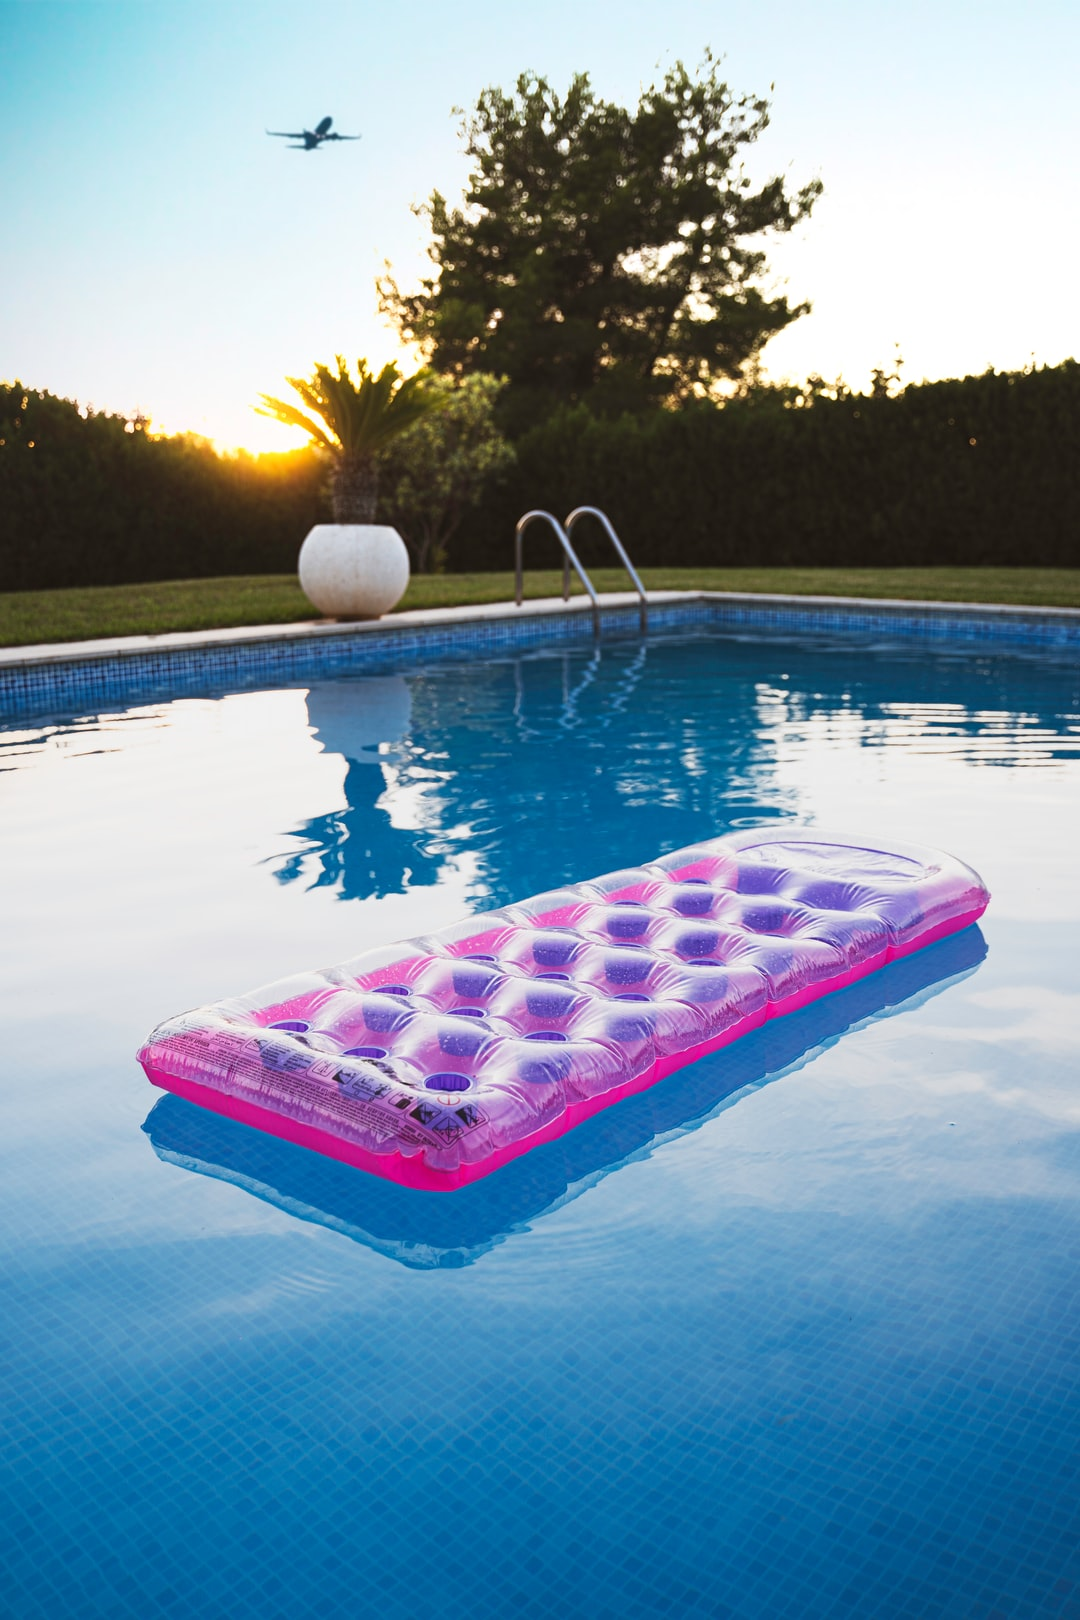 The Benefits of Adding Borates to Your Pool